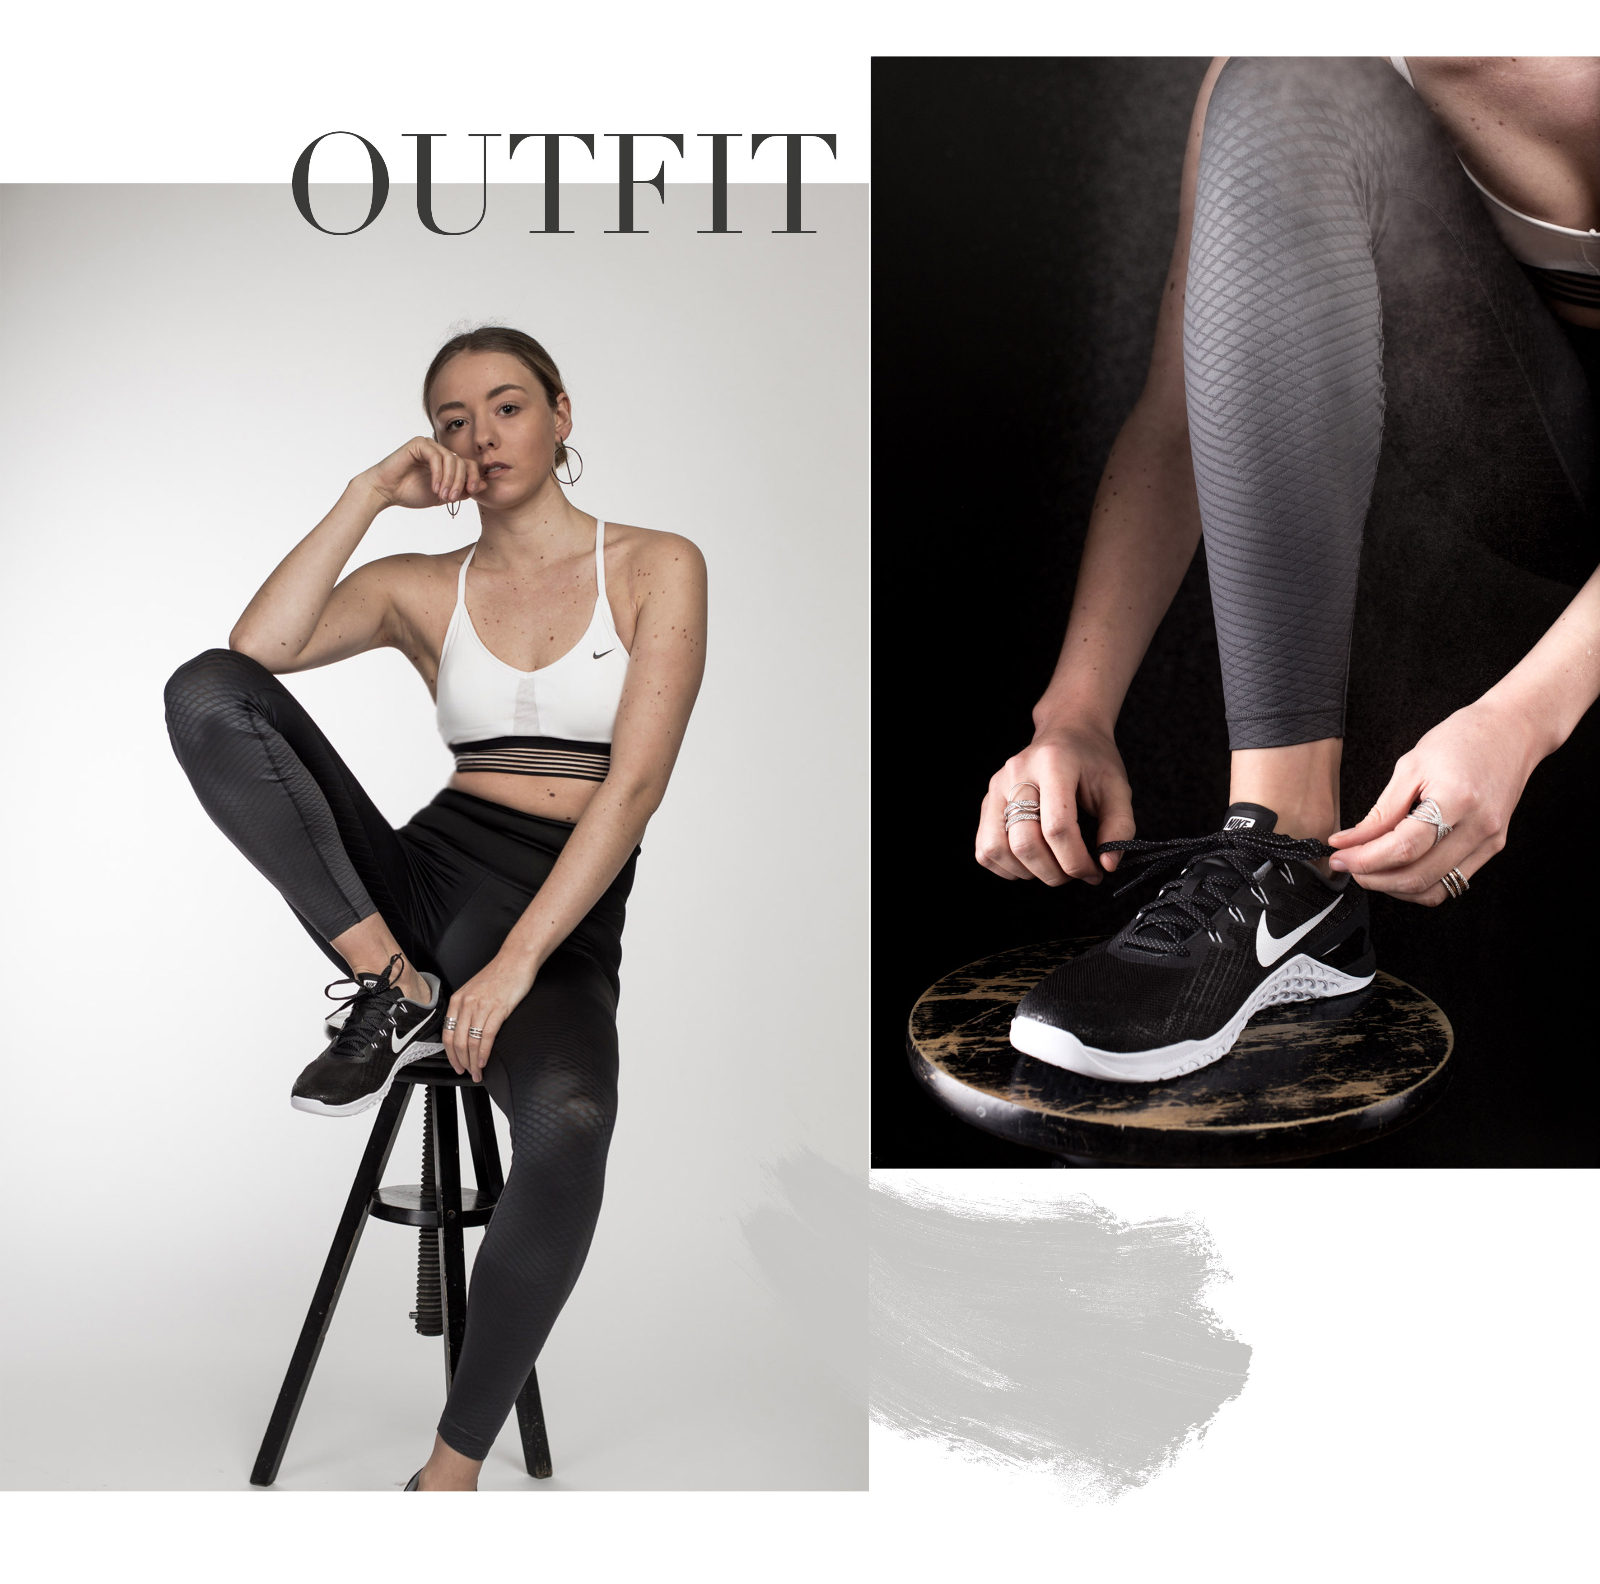 Nike_NikeWomen_Fitness_Blog_Sport-The-Limits-of-Control-Fashion-Fashionblogger-Blogger-Berlin-Deutschland-Modeblog-Modeblogger